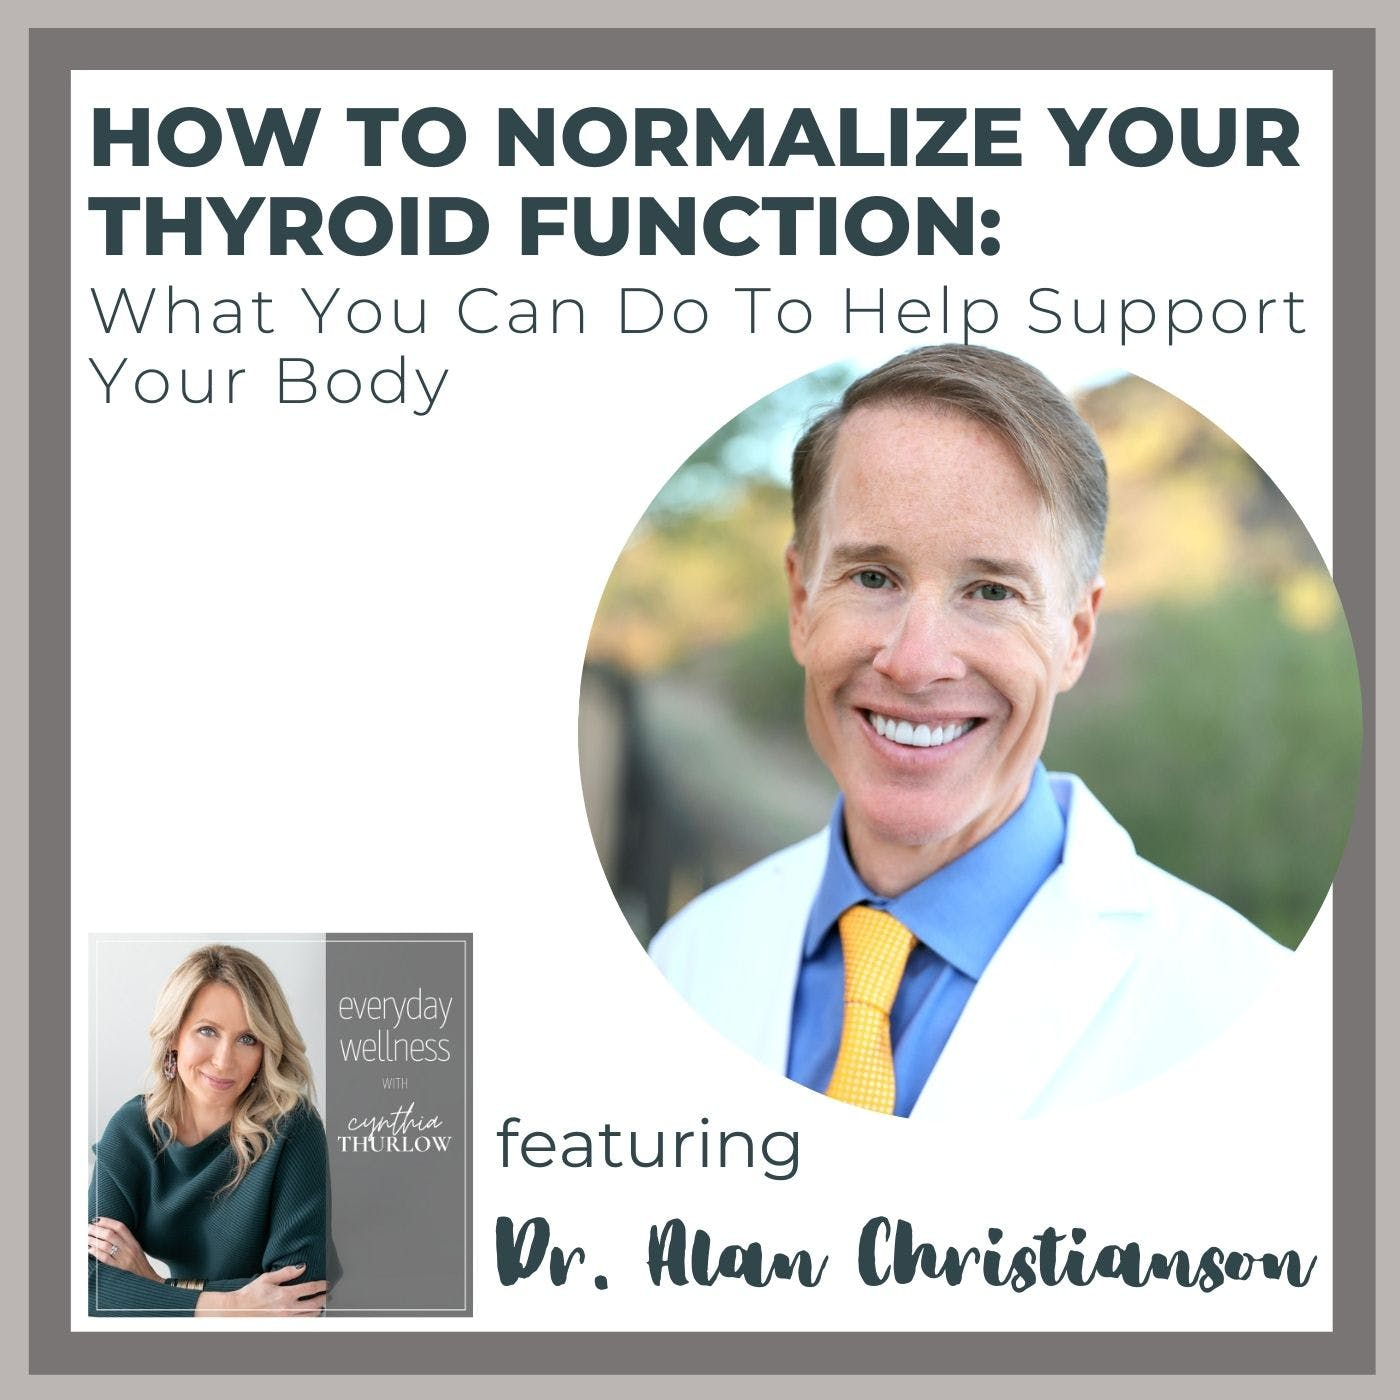 Ep. 154 How to Normalize Your Thyroid Function: What You Can Do To Help Support Your Body with Dr. Alan Christianson